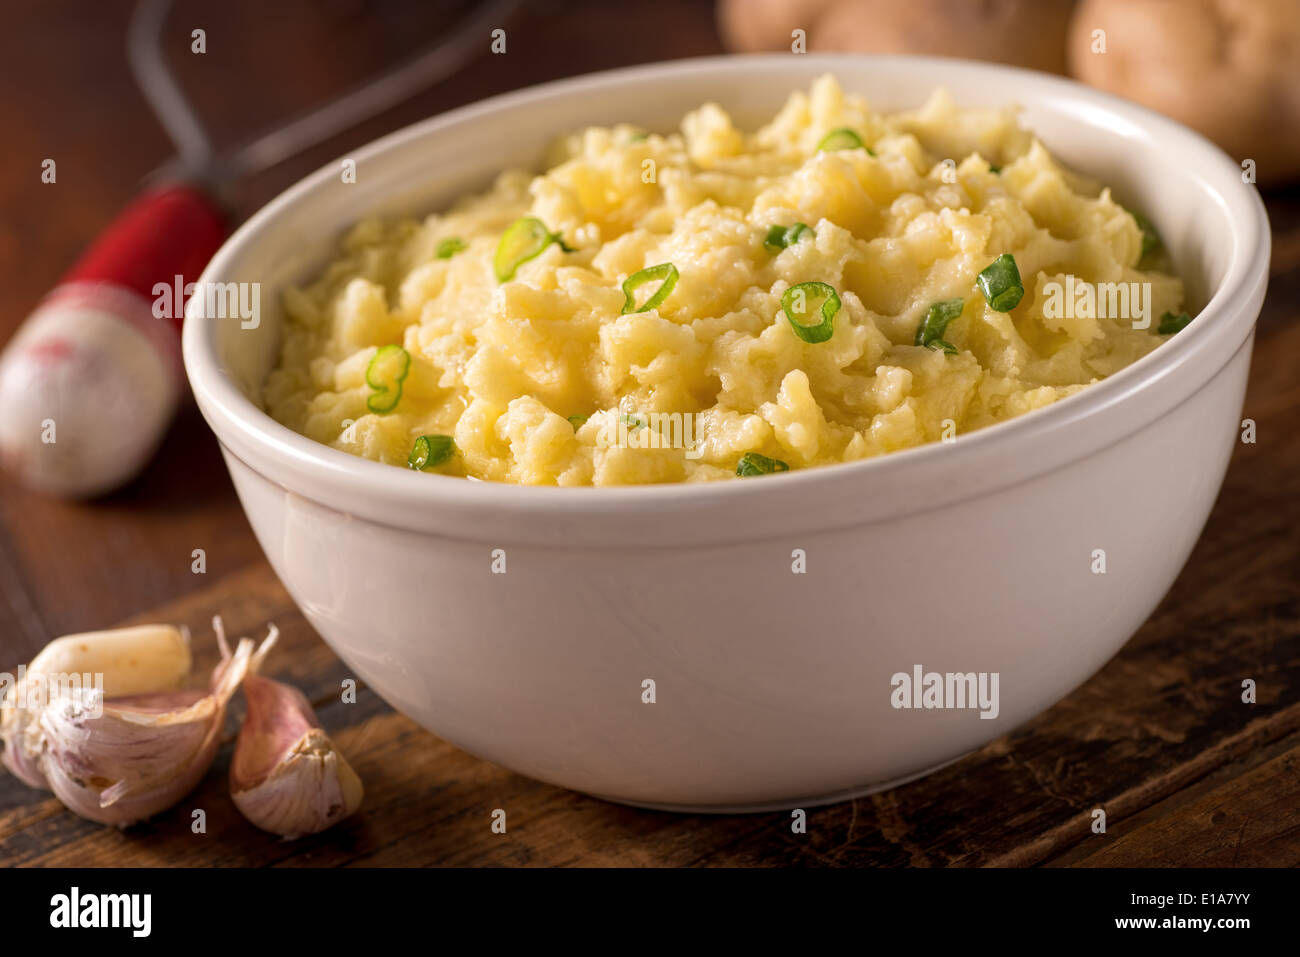 A bowl of delicious creamy garlic mashed potatoes with butter and green onions. - Stock Image